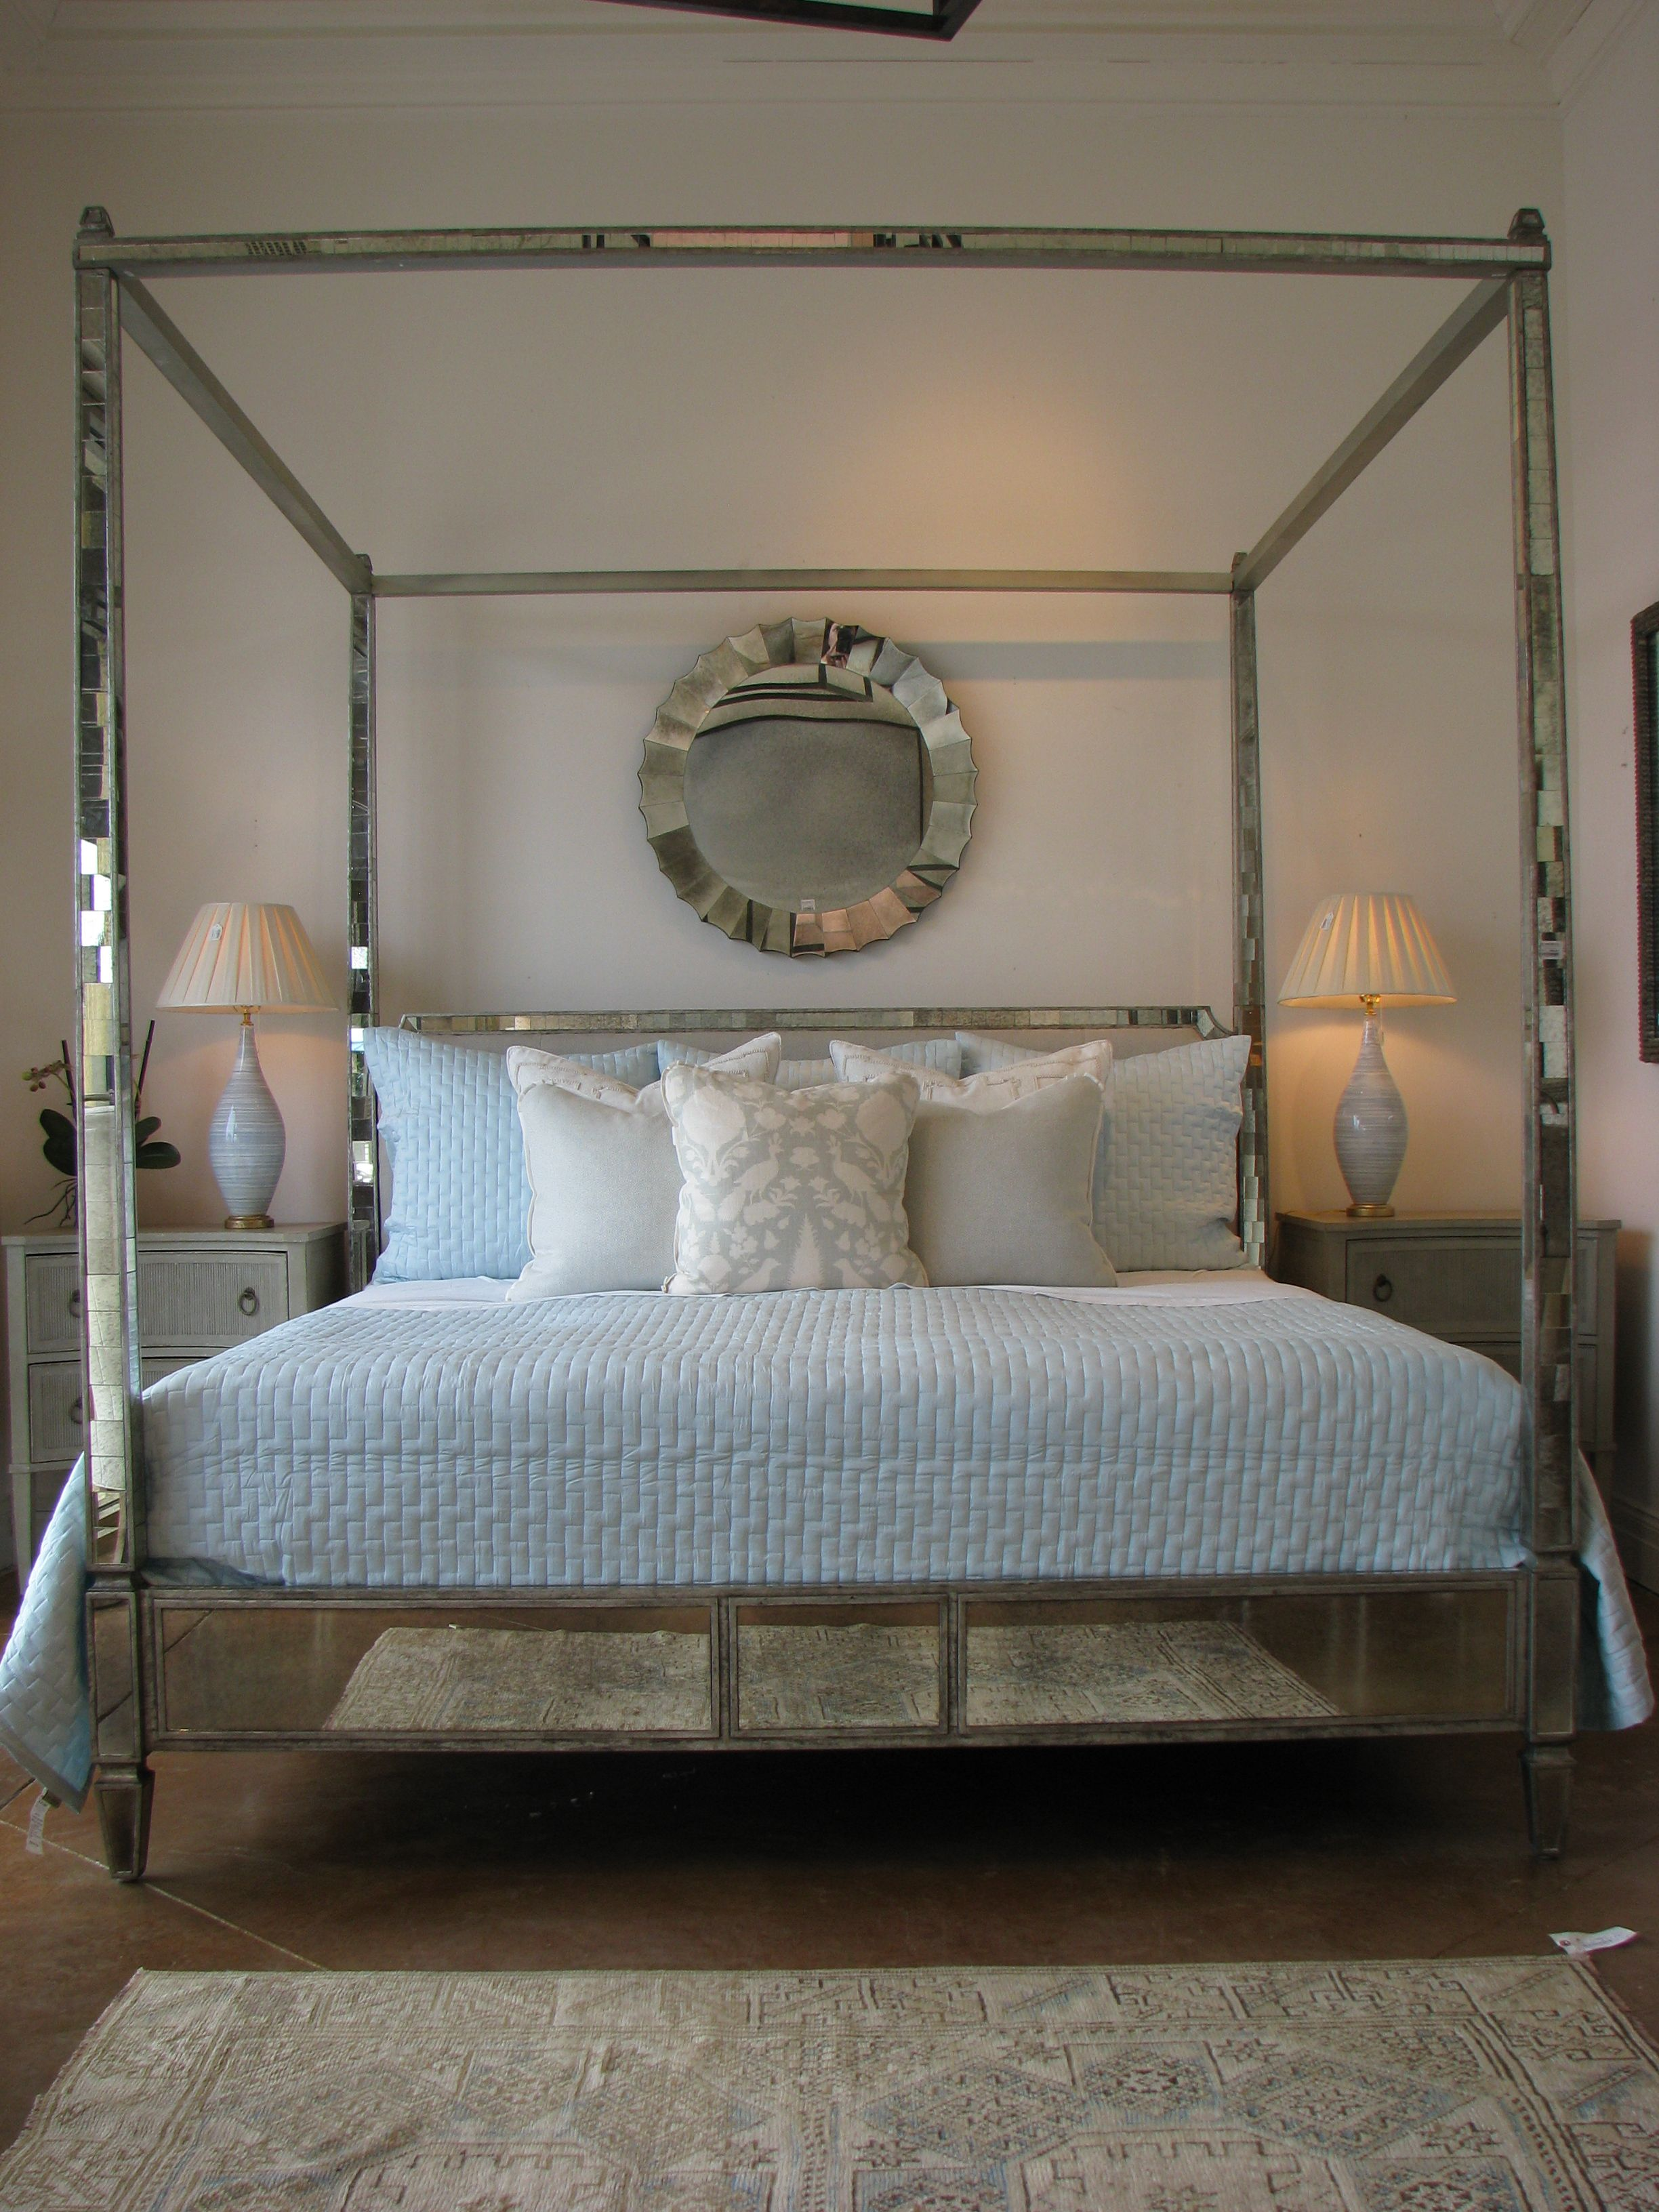 Mirrored four poster bed. Obsessed. Sleeping & Dreaming